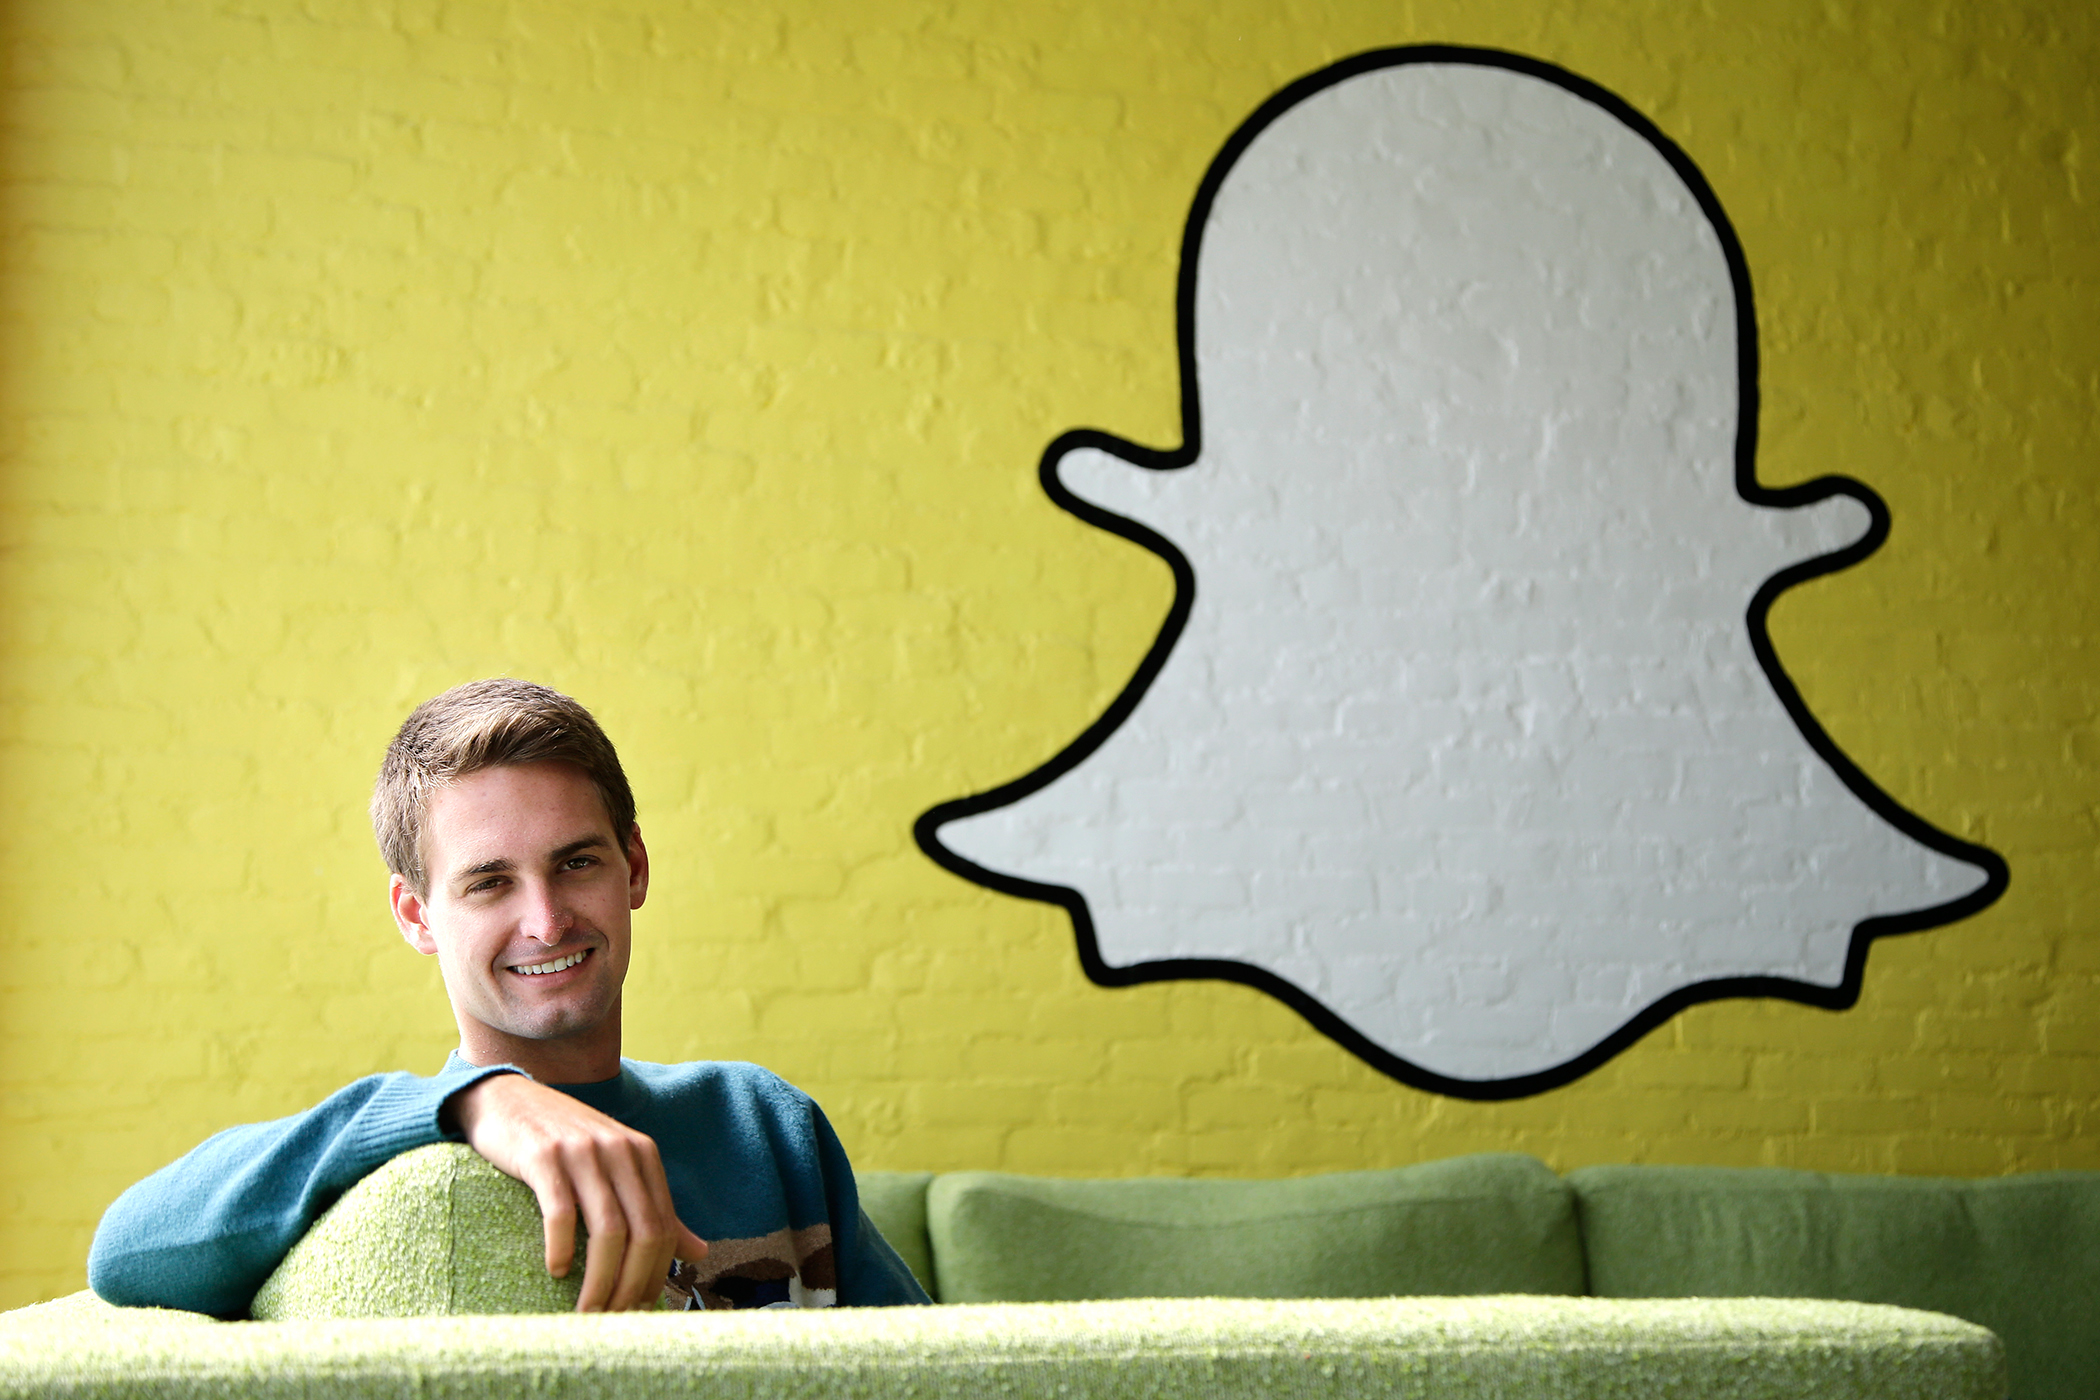 This October 24, 2013 file photo shows Snapchat CEO Evan Spiegel in Los Angeles.